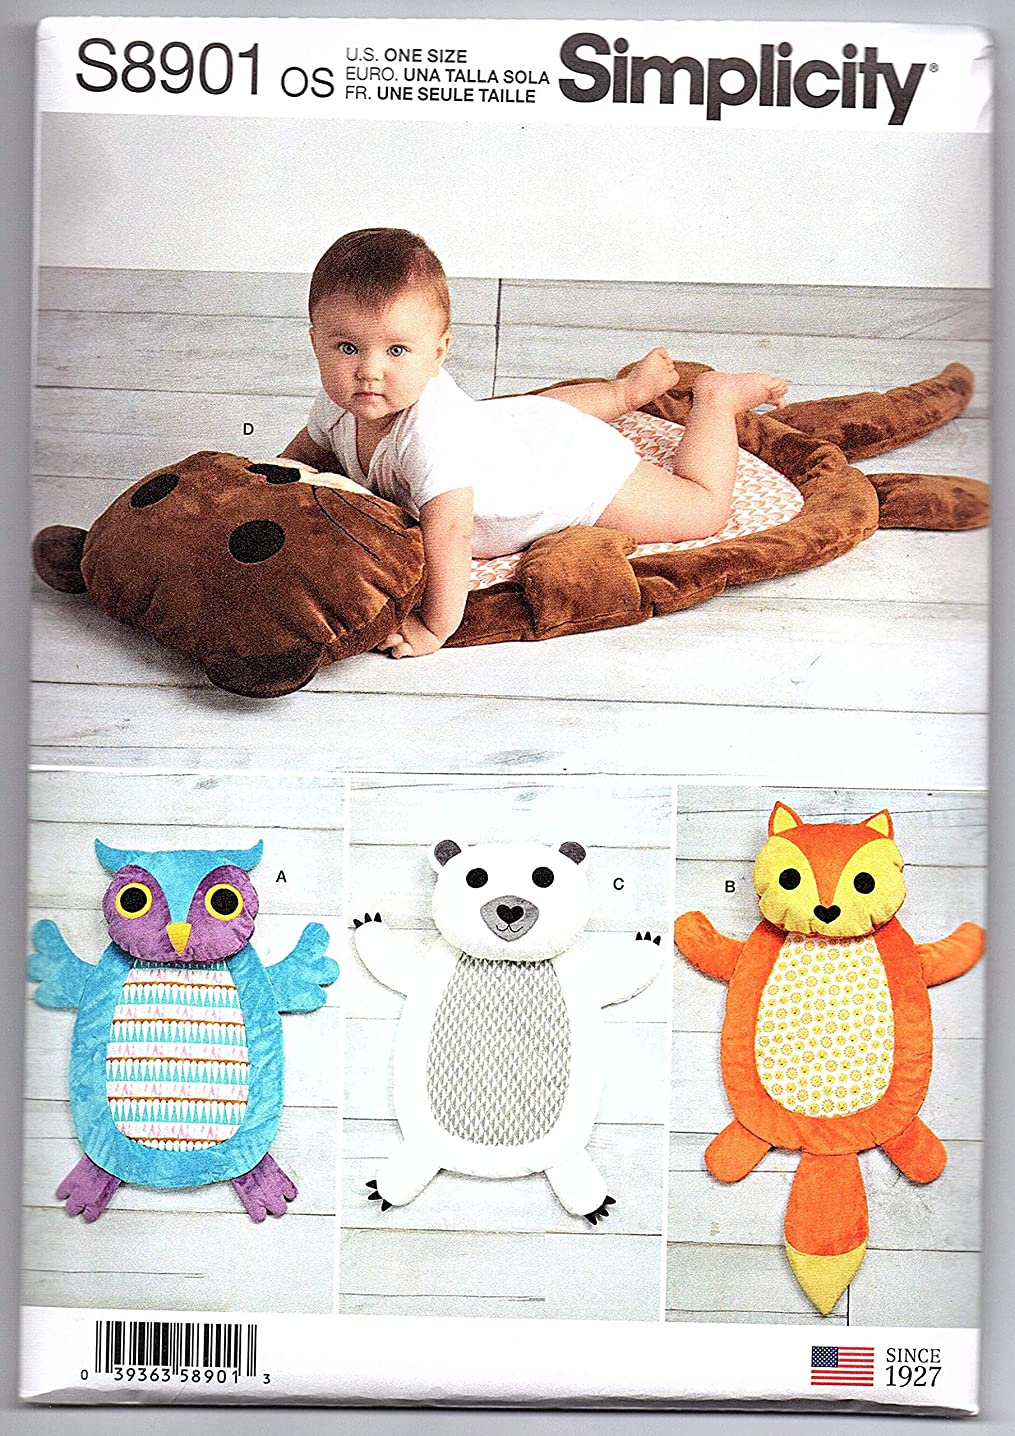 Simplicity Sewing Pattern S8901 - Use to Make - 4 Designs of Baby Tummy Time Animal Mats